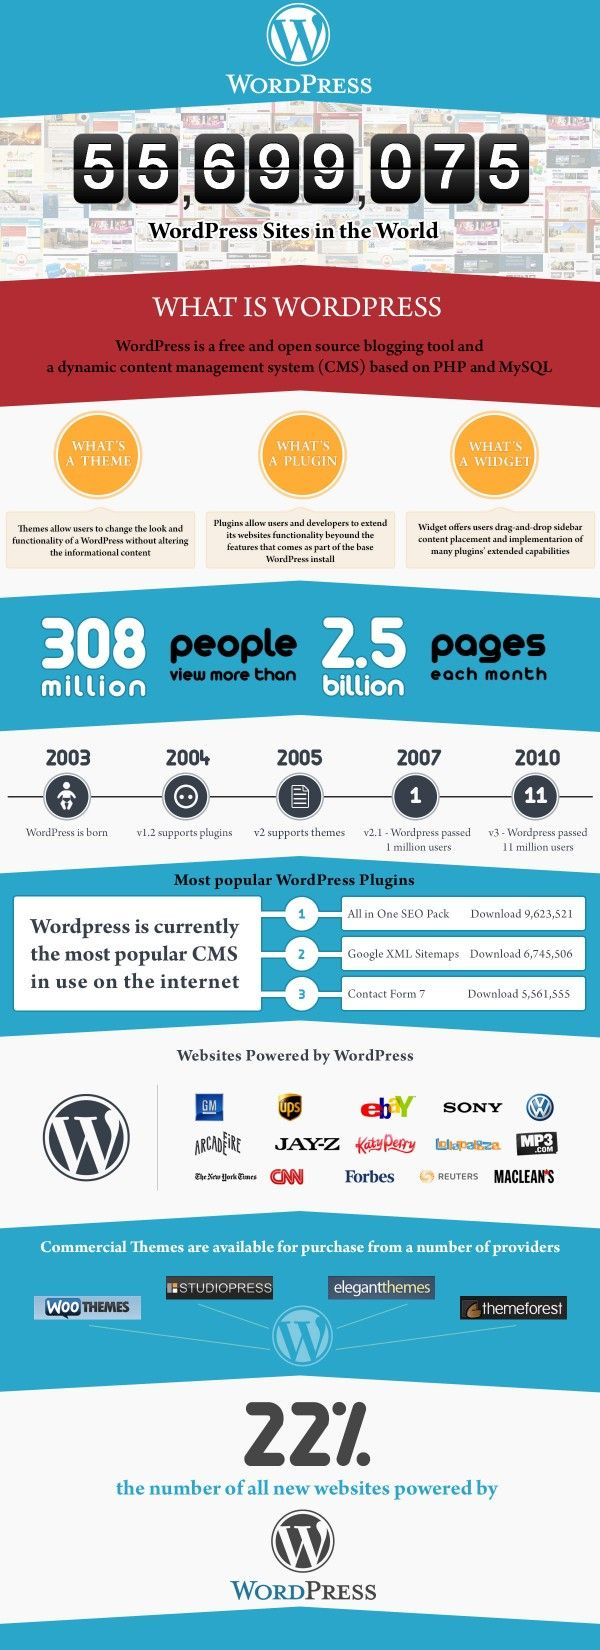 look at all of the big name sites powered by wordpress! the wave of the future!